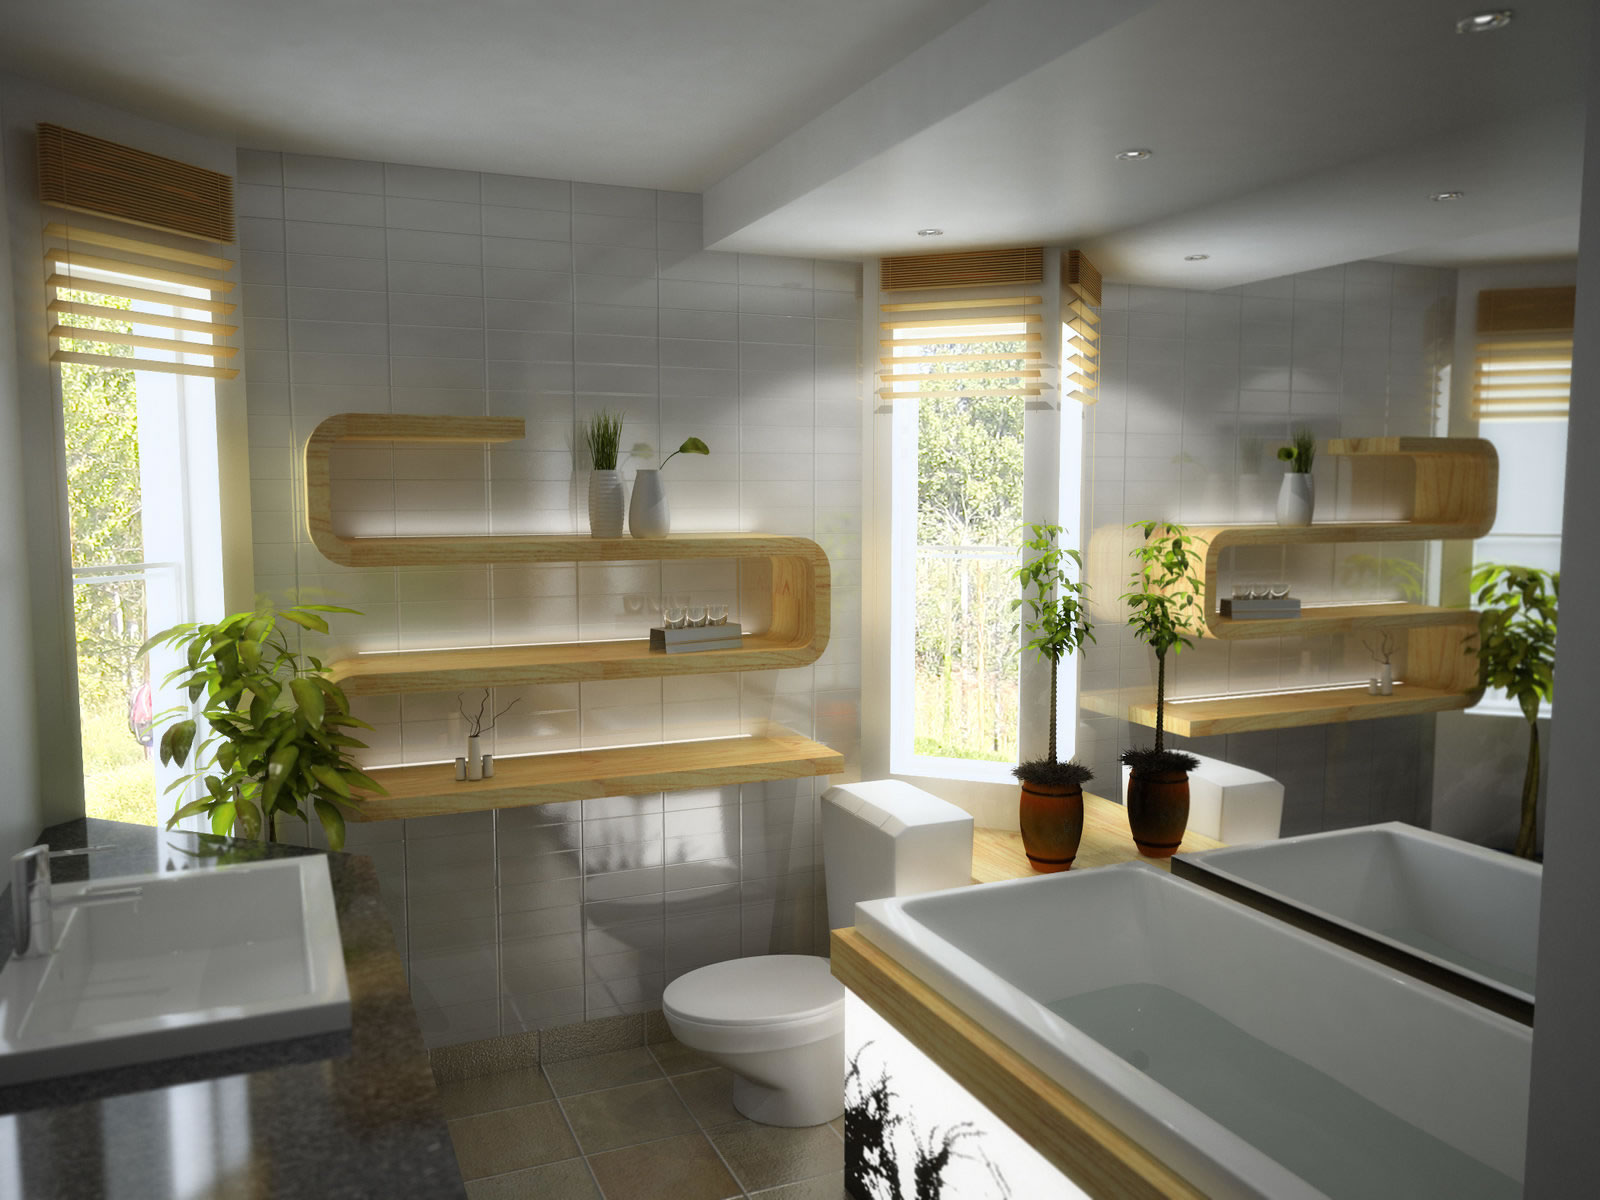 Small Kitchen Design Toronto Some Key Elements Which Can Impart Completely A Different Look To